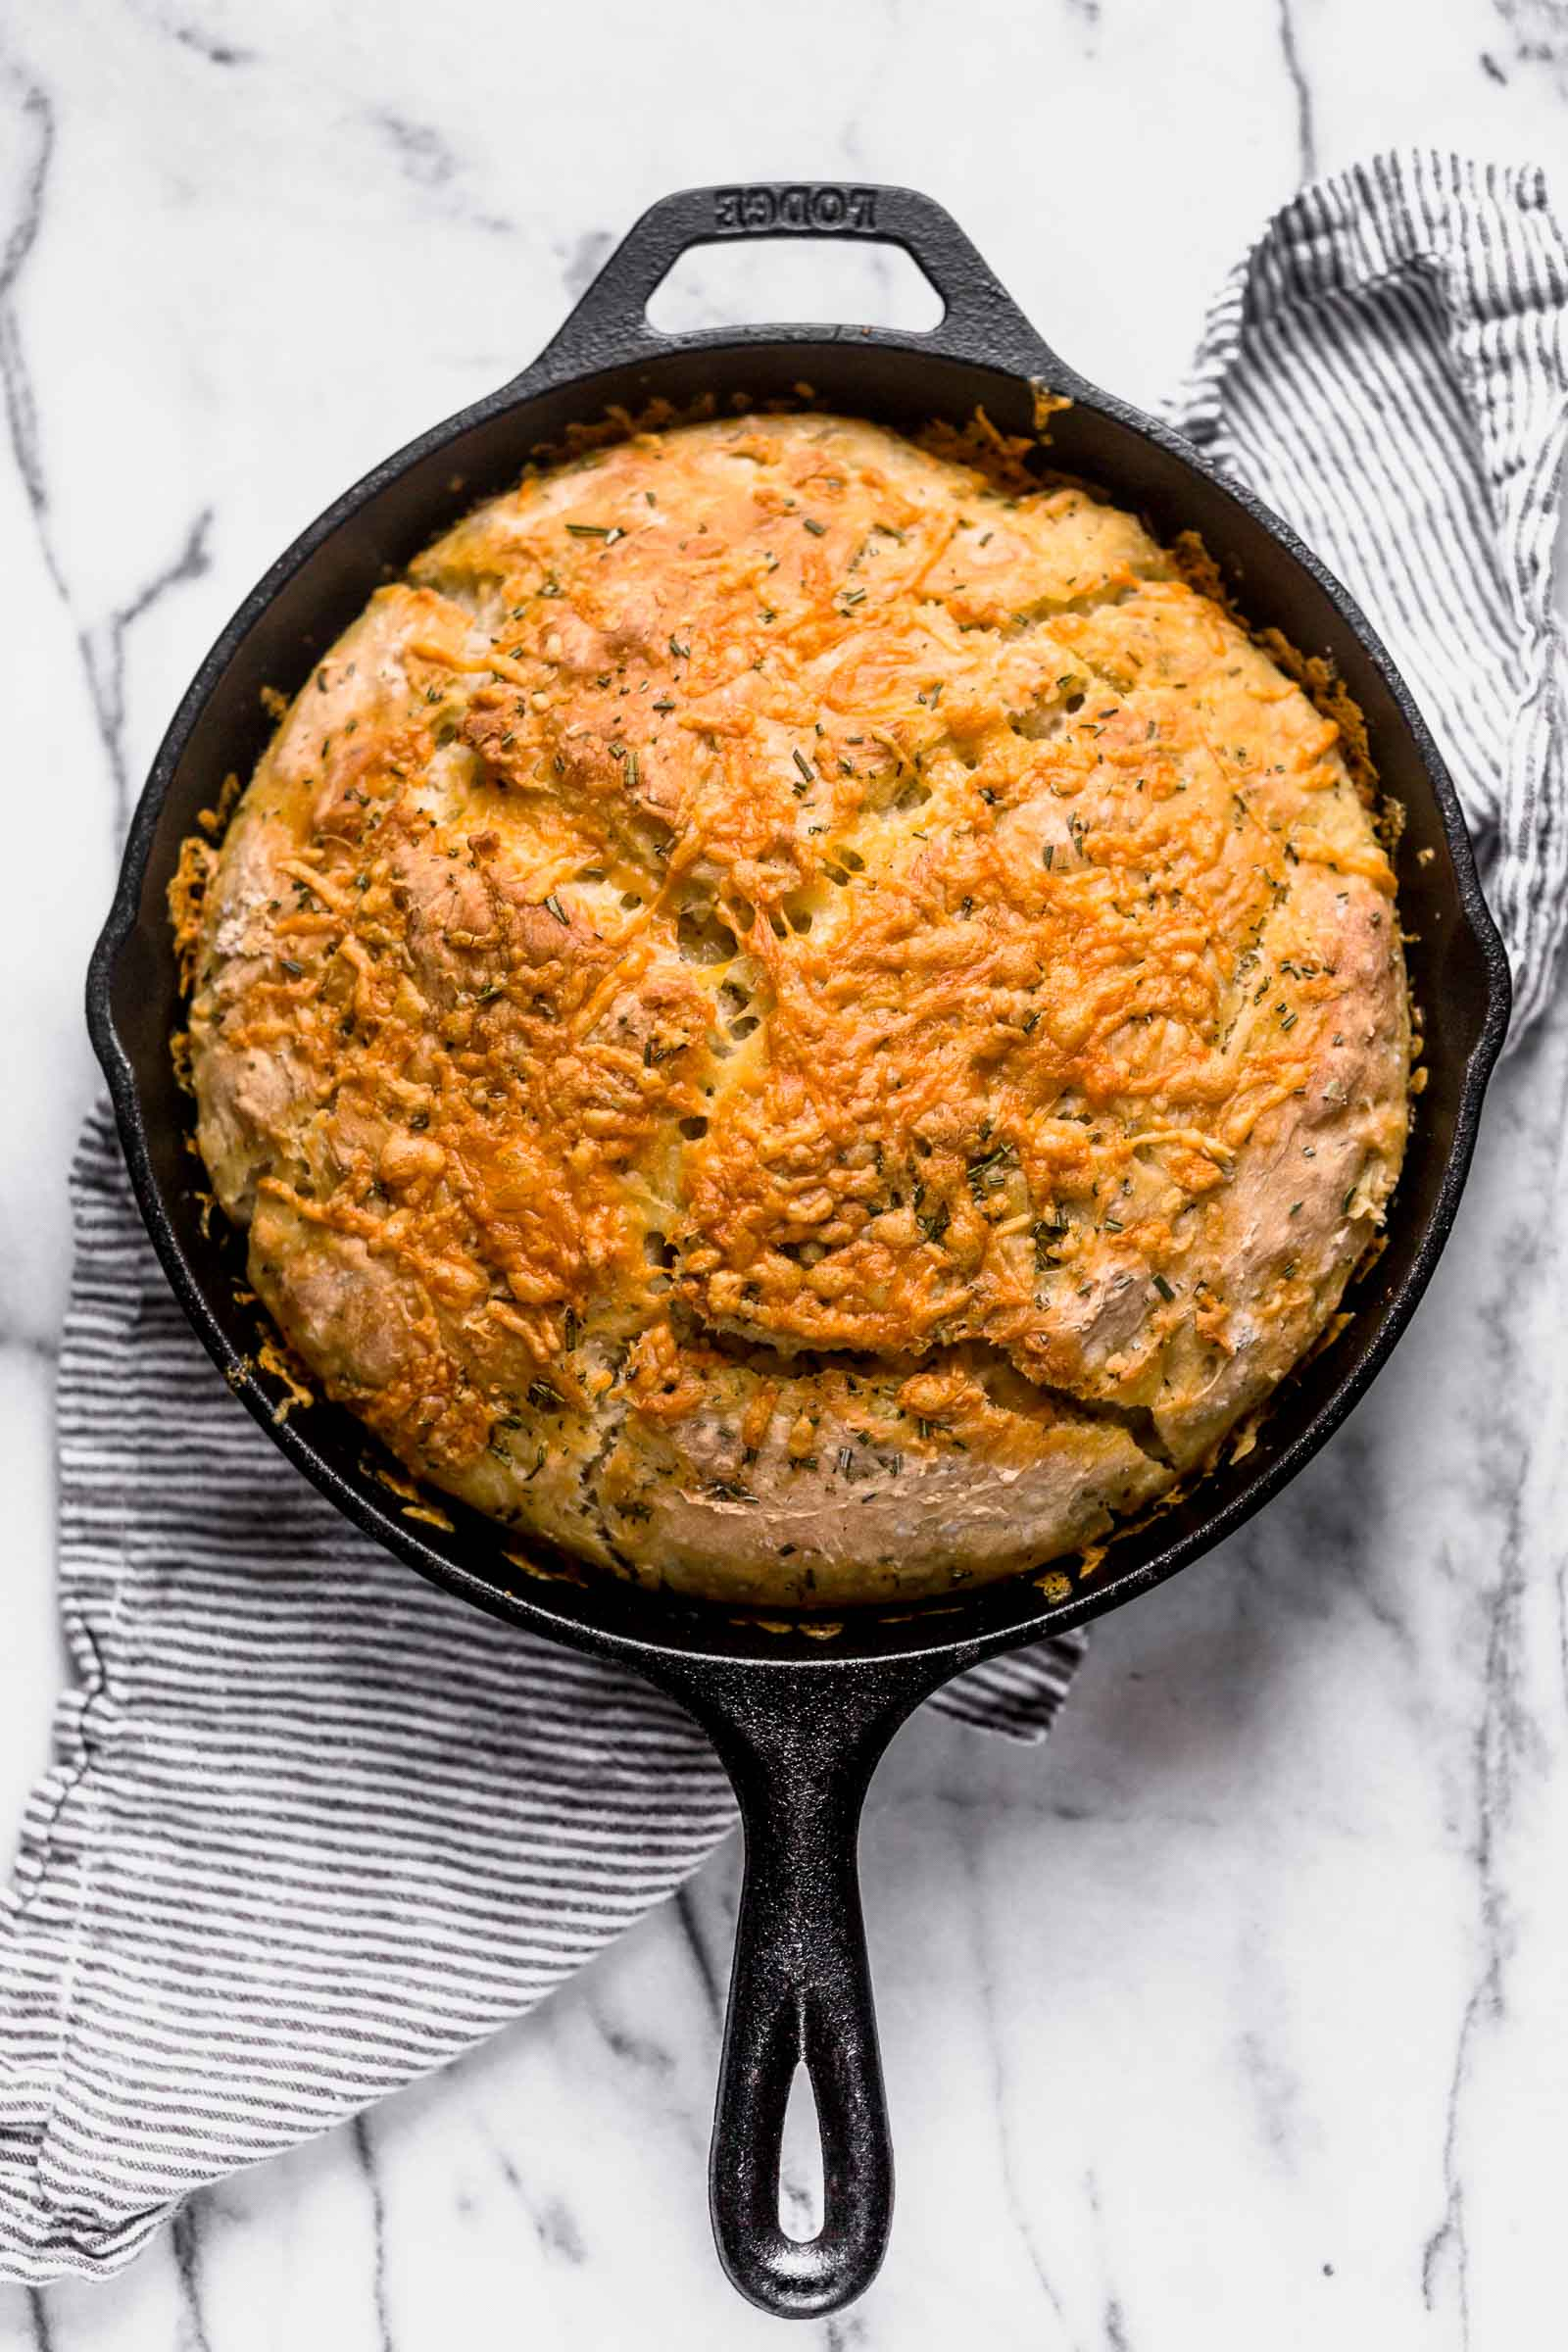 No Knead Rosemary Parmesan Skillet Bread features a super easy homemade dough that comes together in a matter of minutes! This bread has tons of flavor and a crispy cheesy crust.